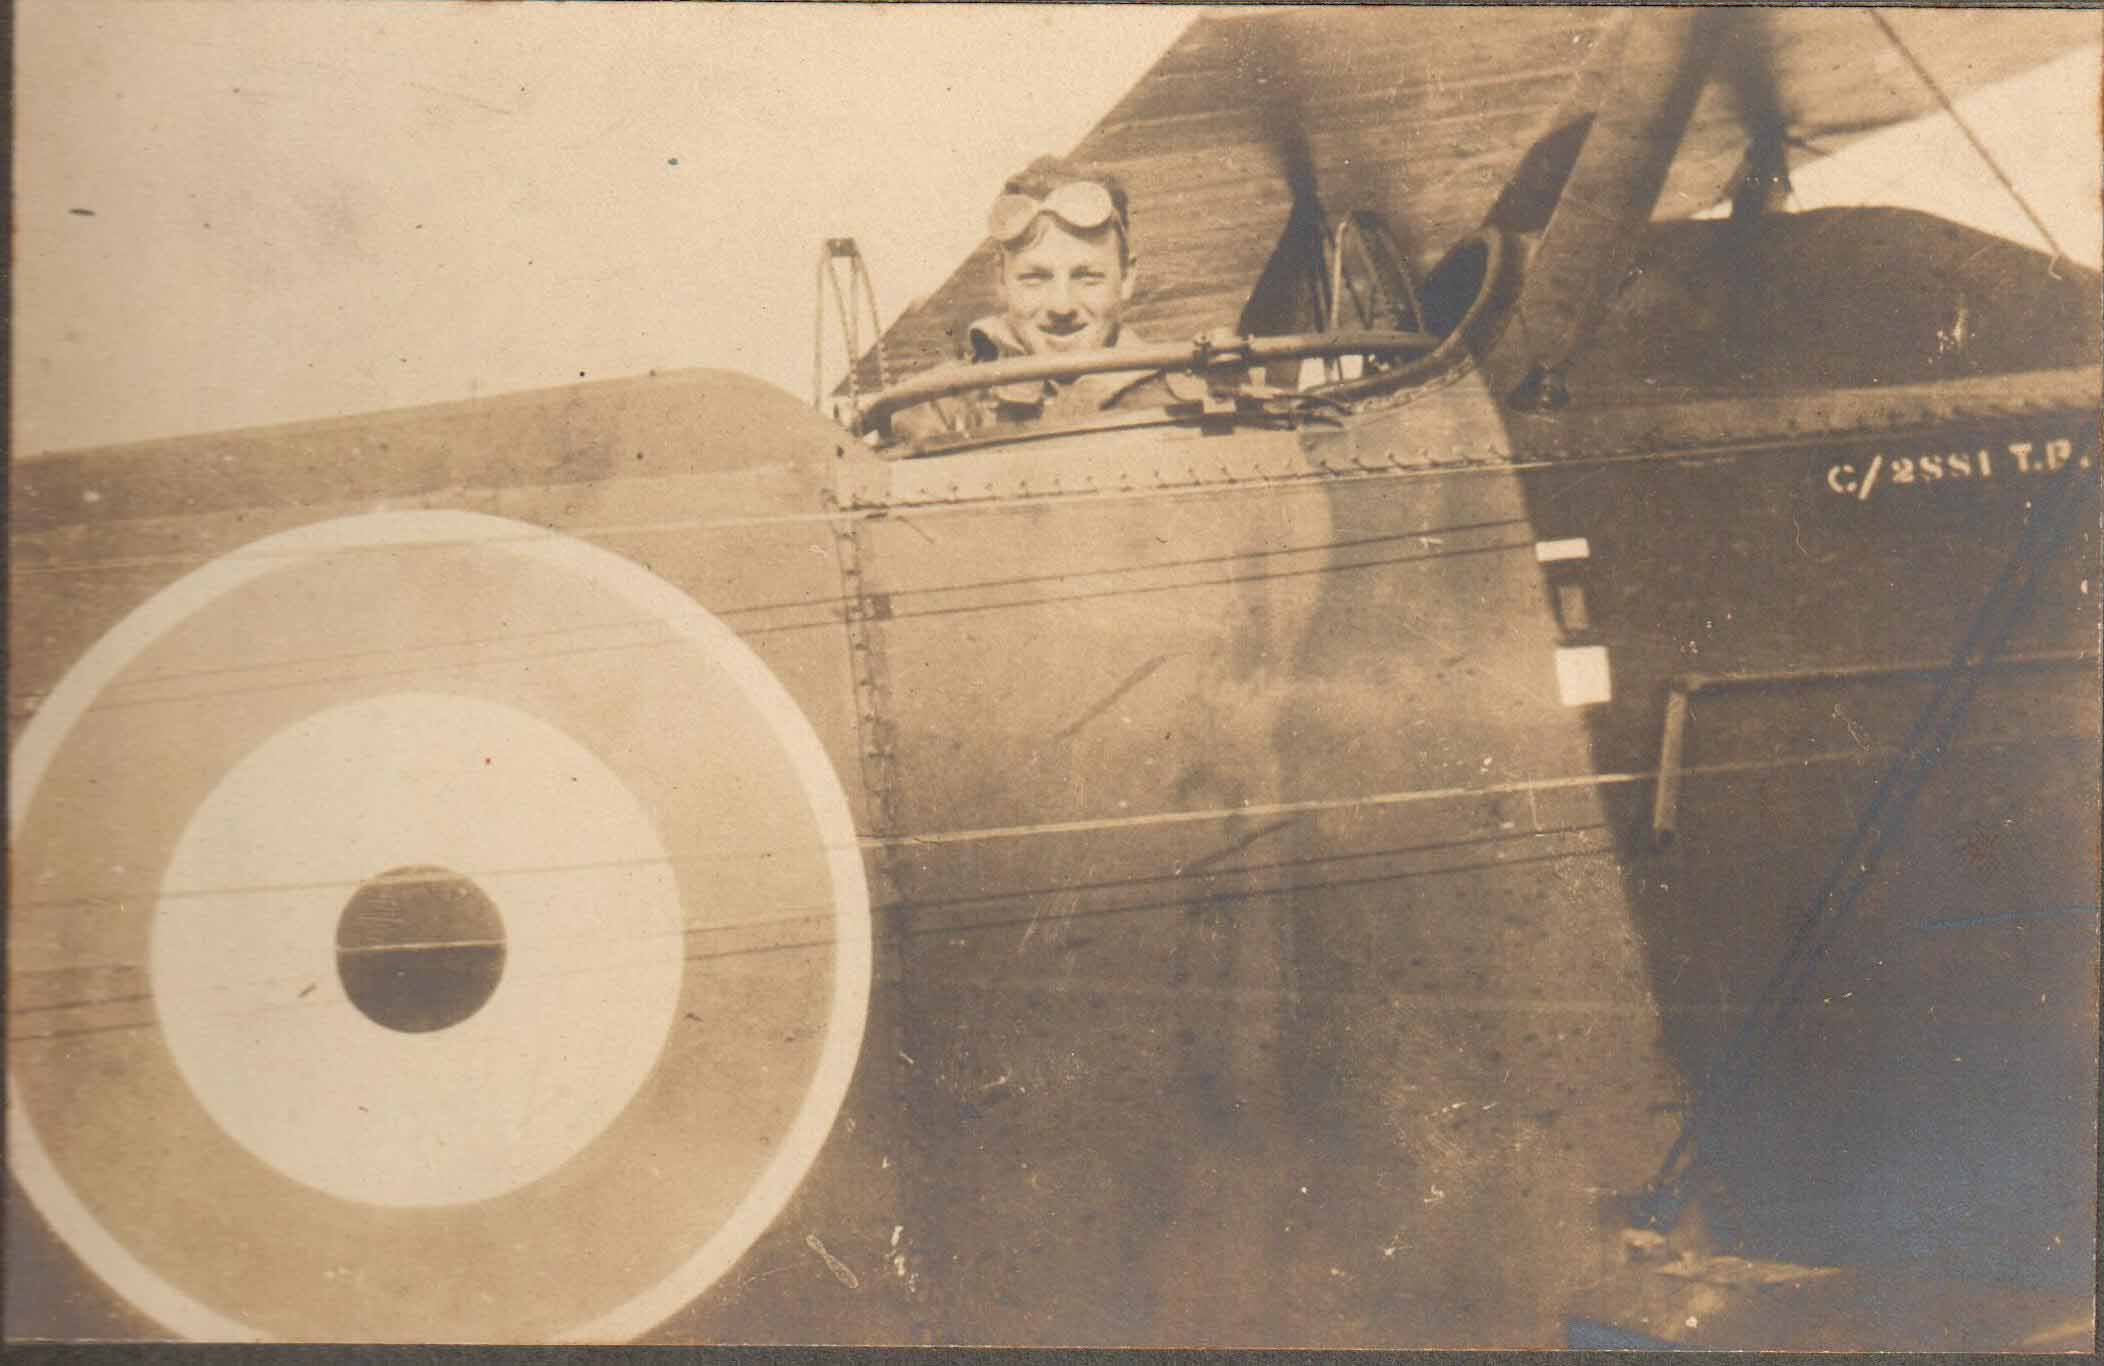 Close up photo of a plane with a man's head visible in the cockpit.